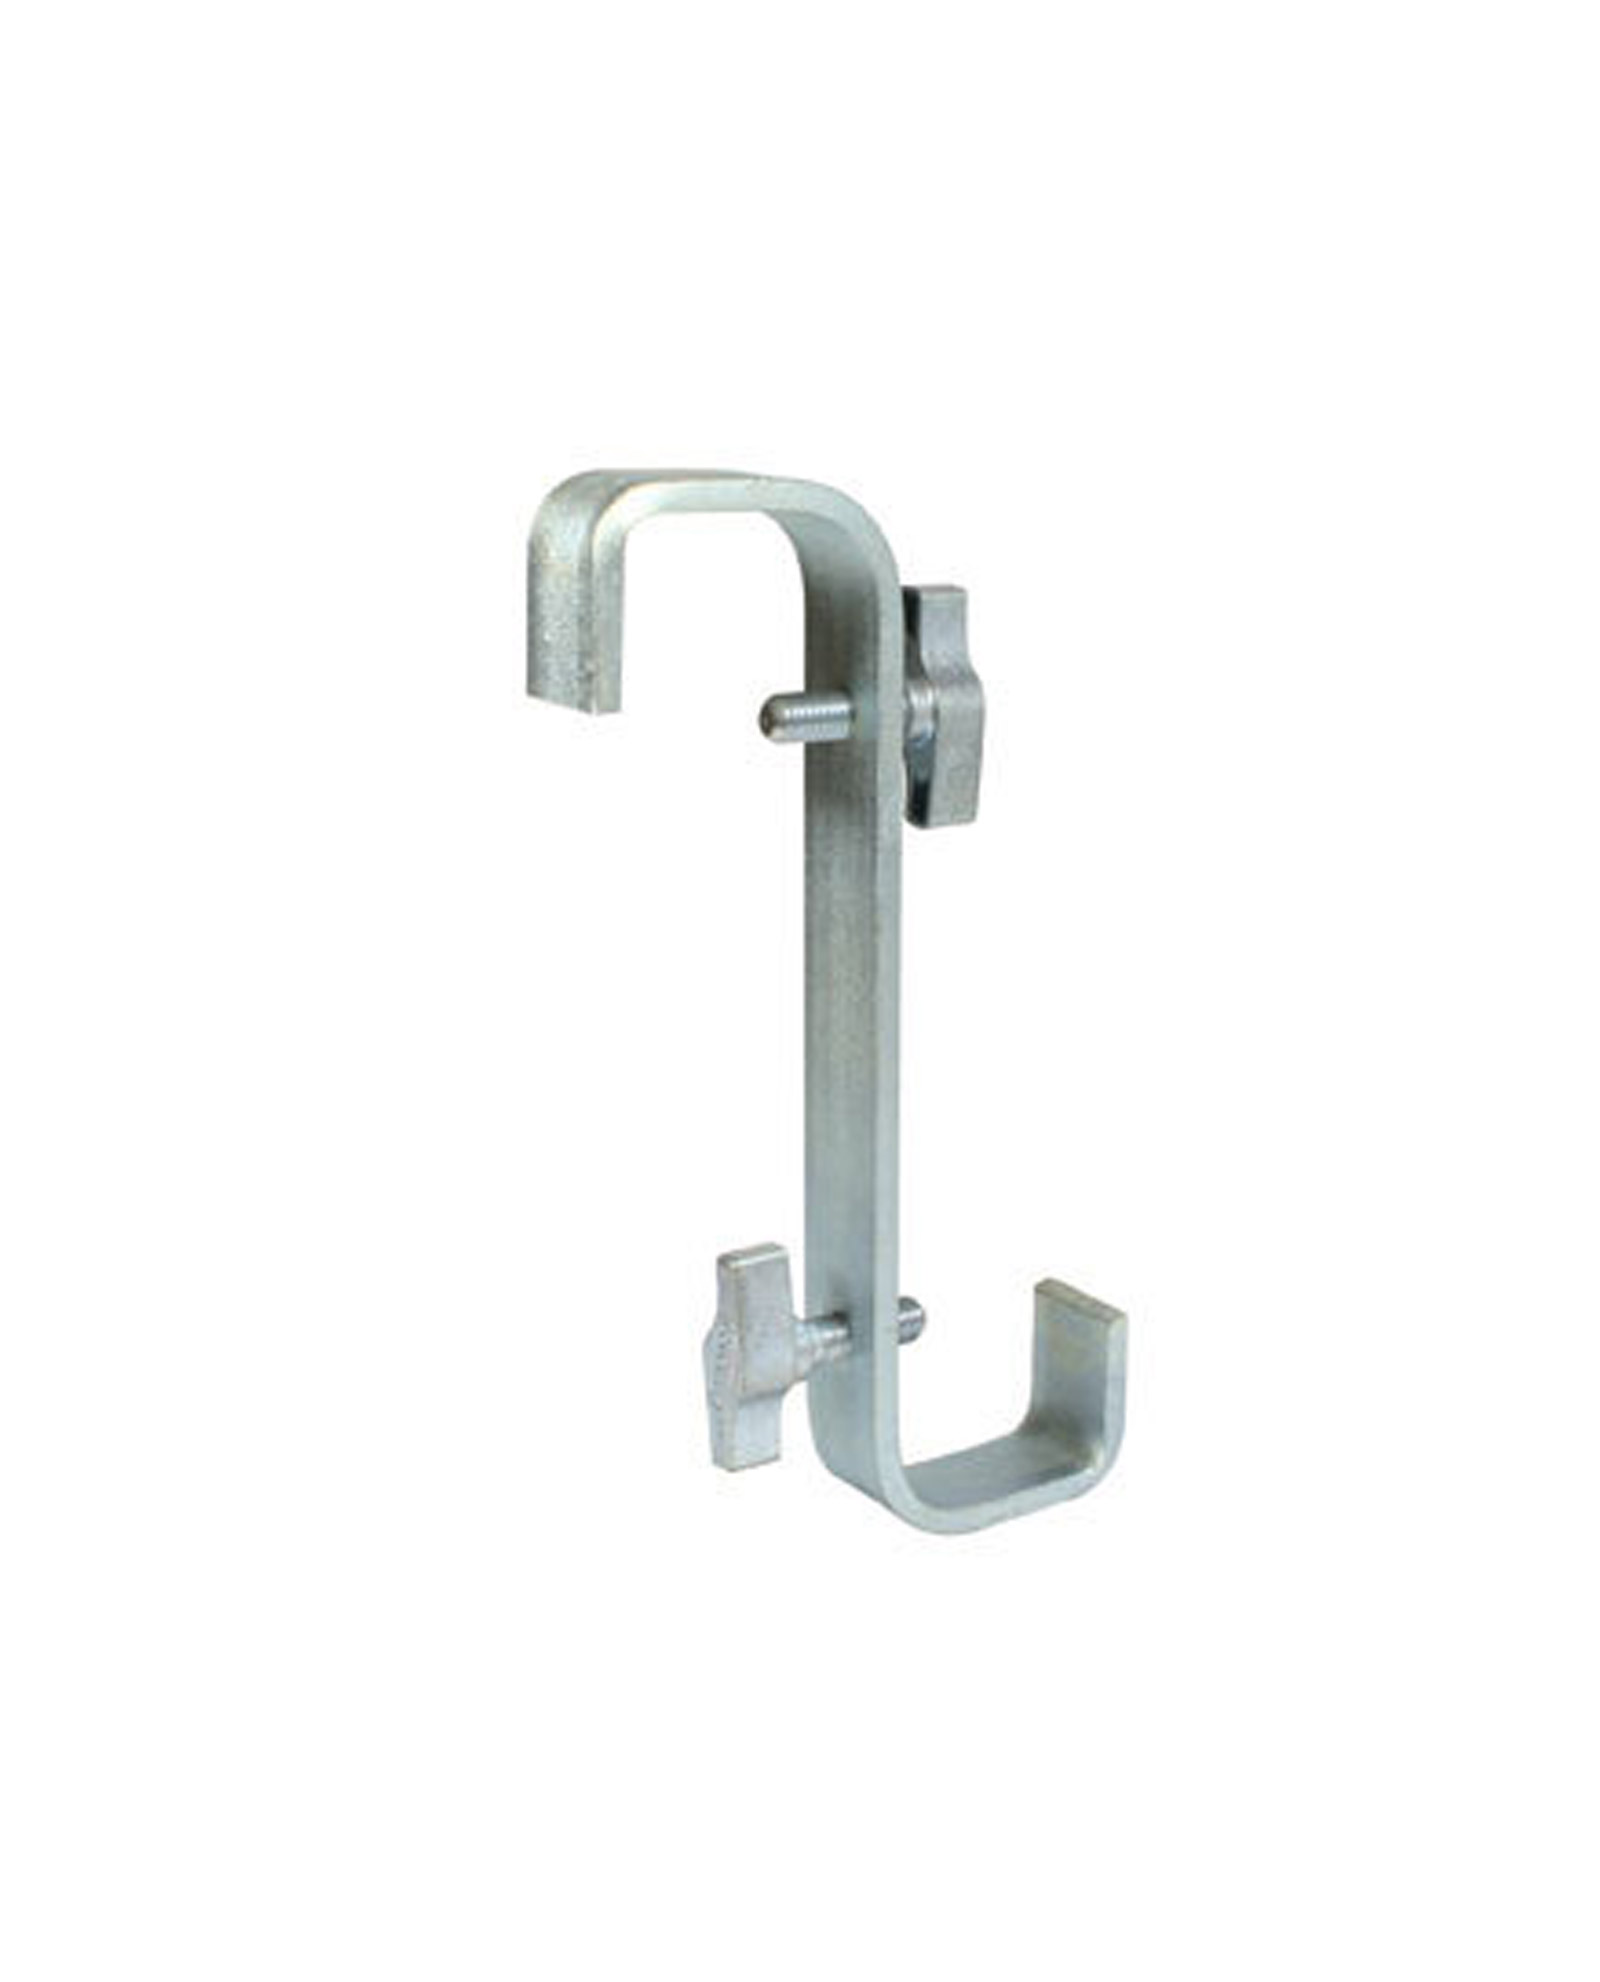 Doughty T19900 Double Ended Hook Clamp 300mm With 180 Degree Twist